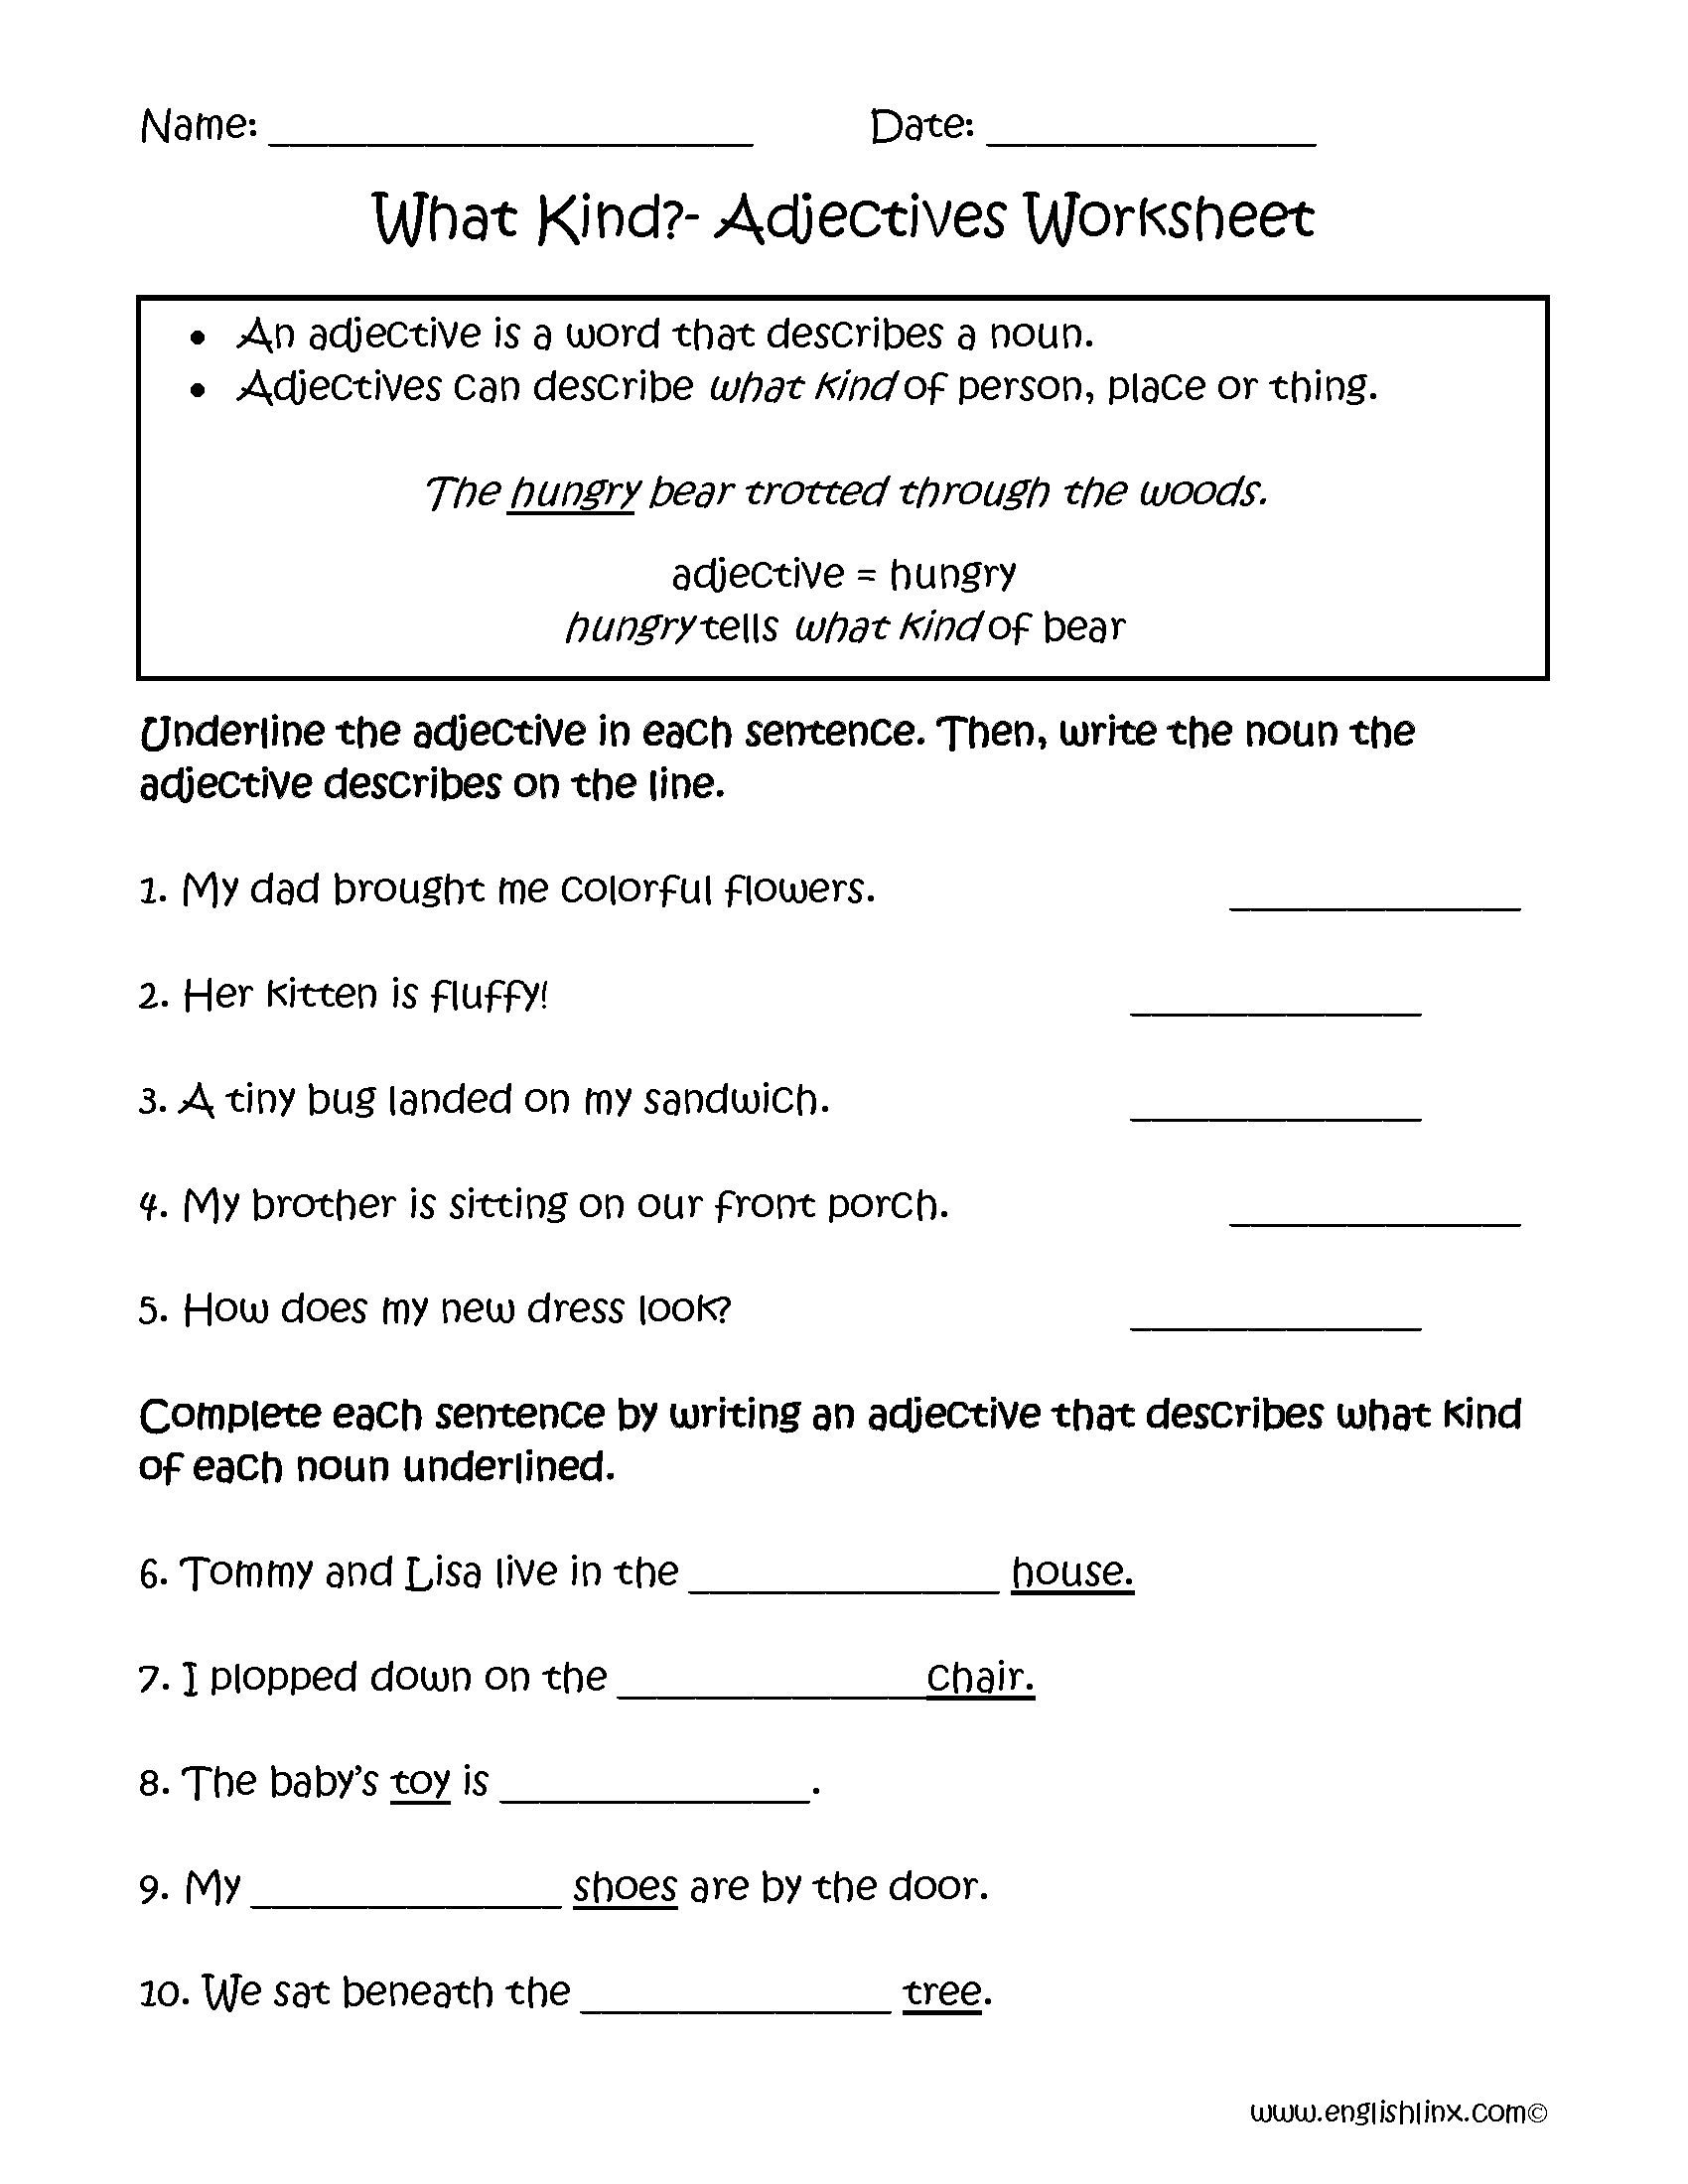 Agreement Of Adjectives Spanish Worksheet Answers